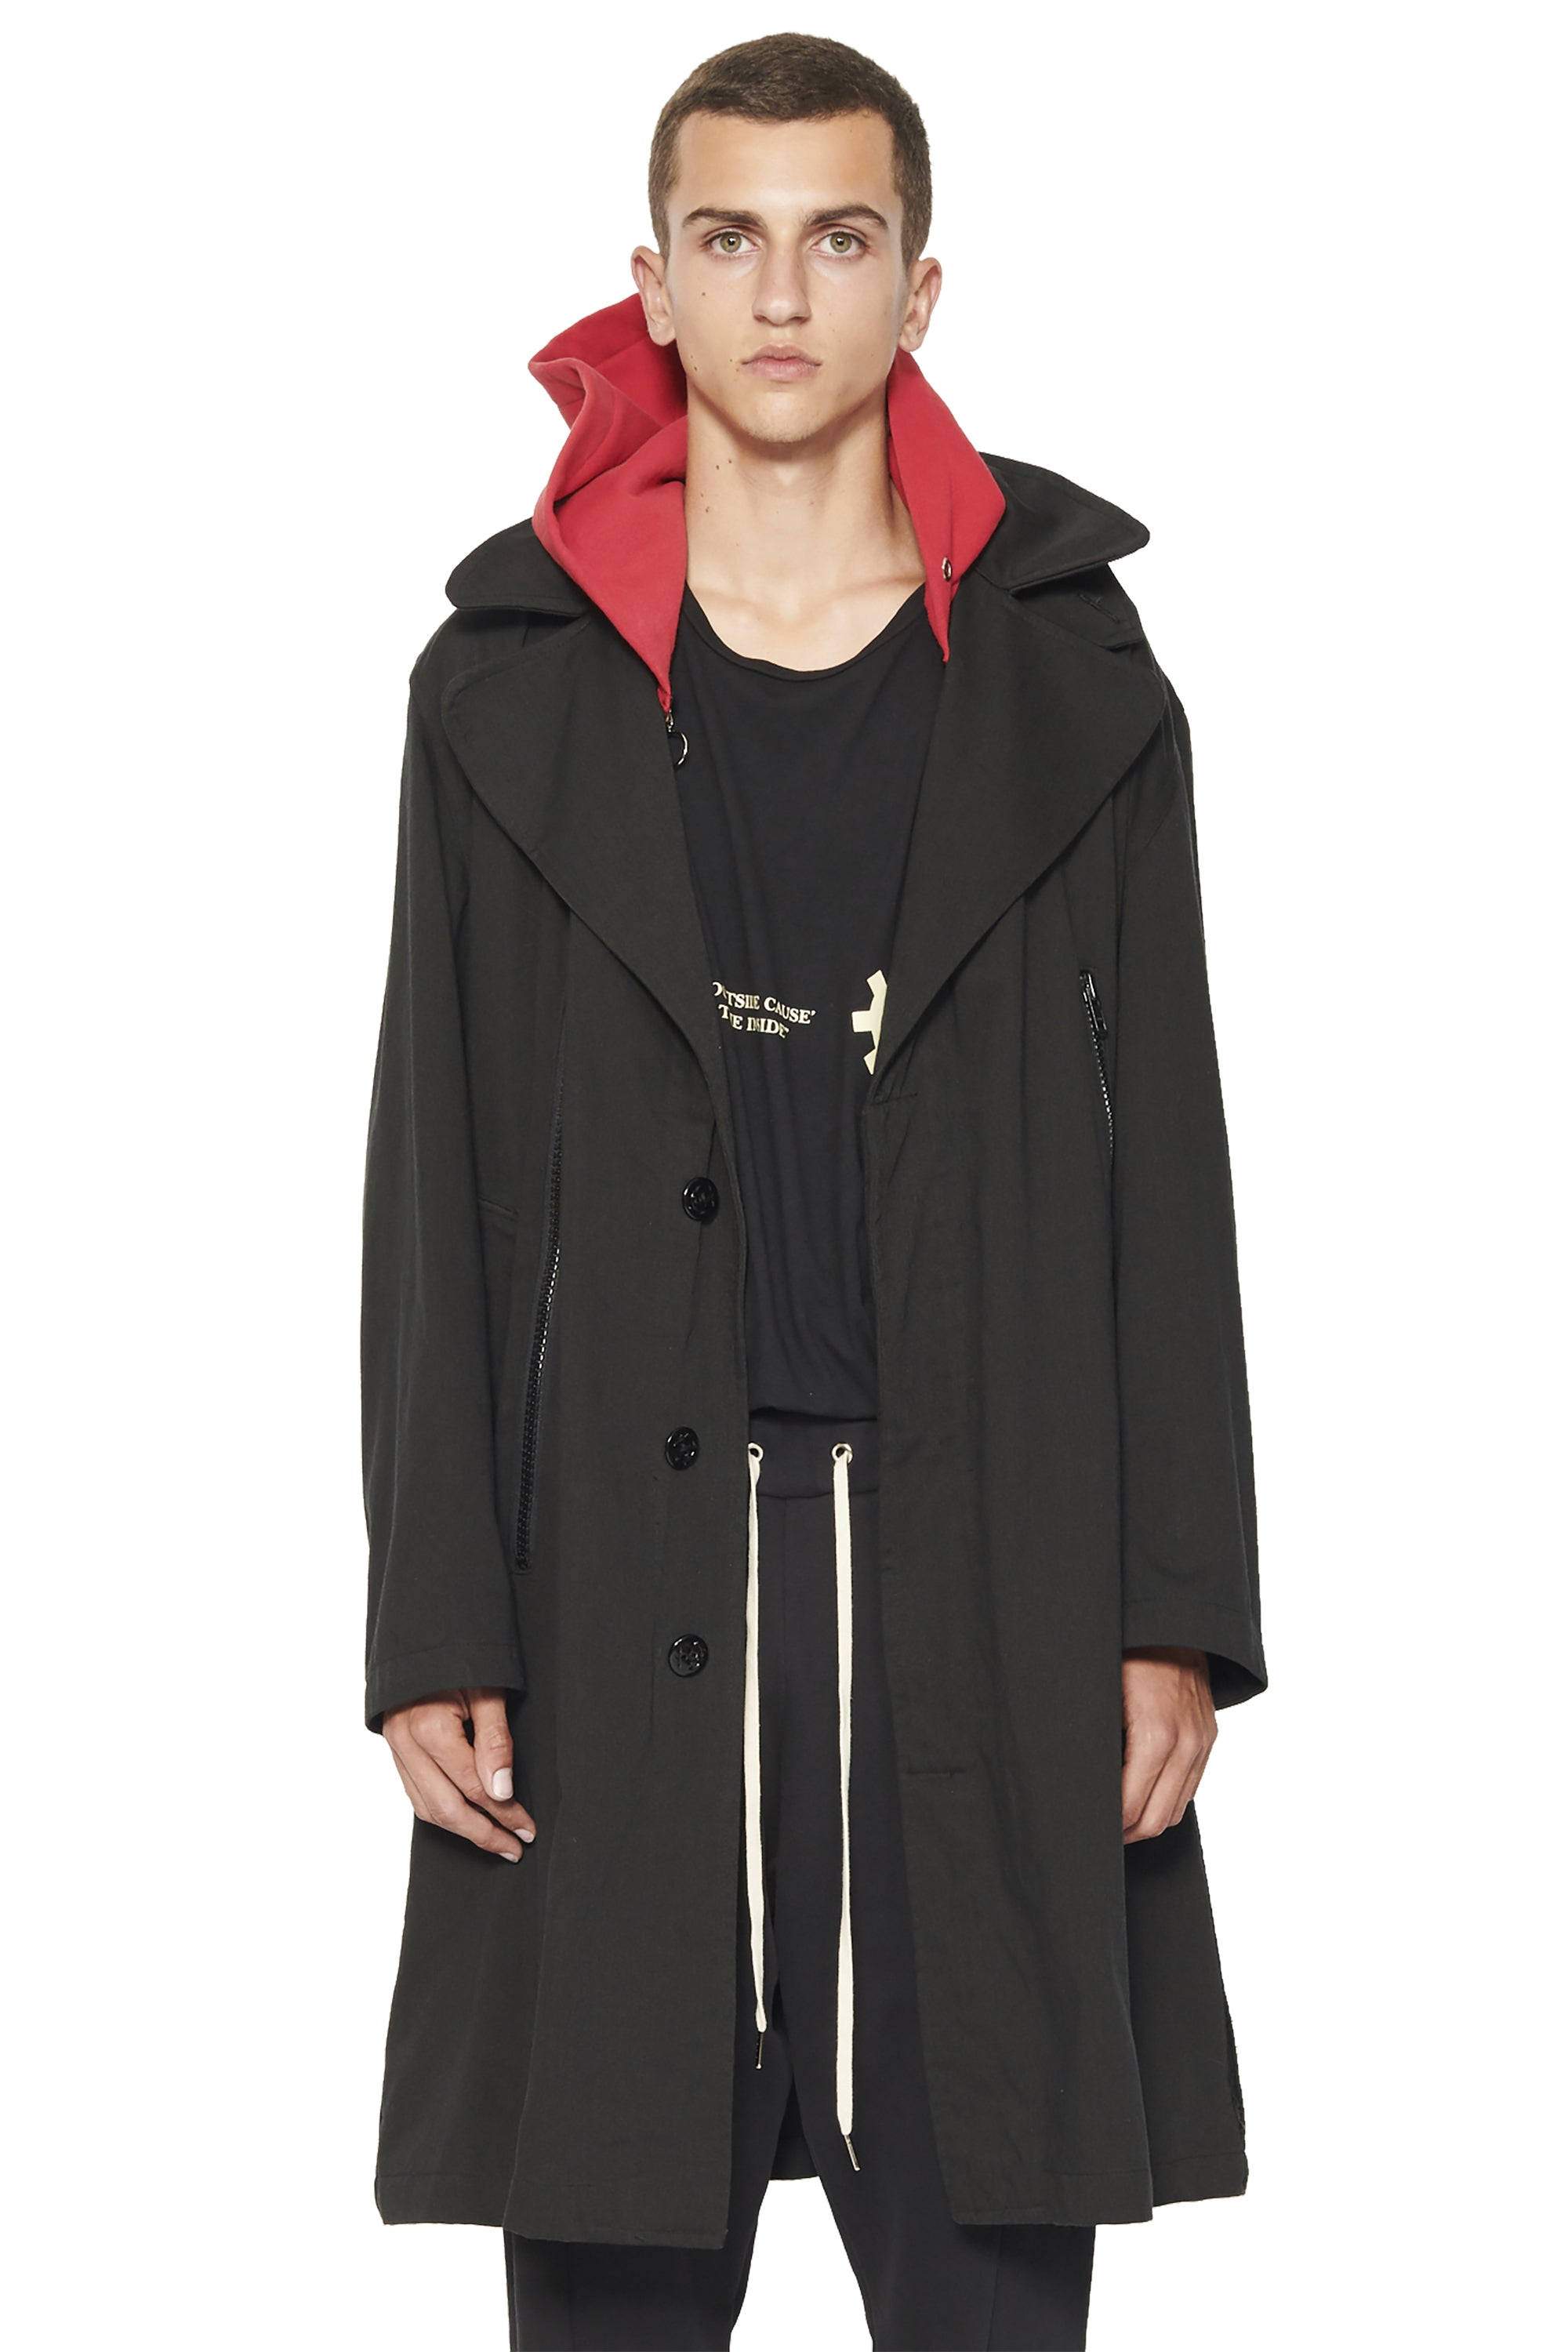 TRENCH WITH HOODIE - BLACK X  RED